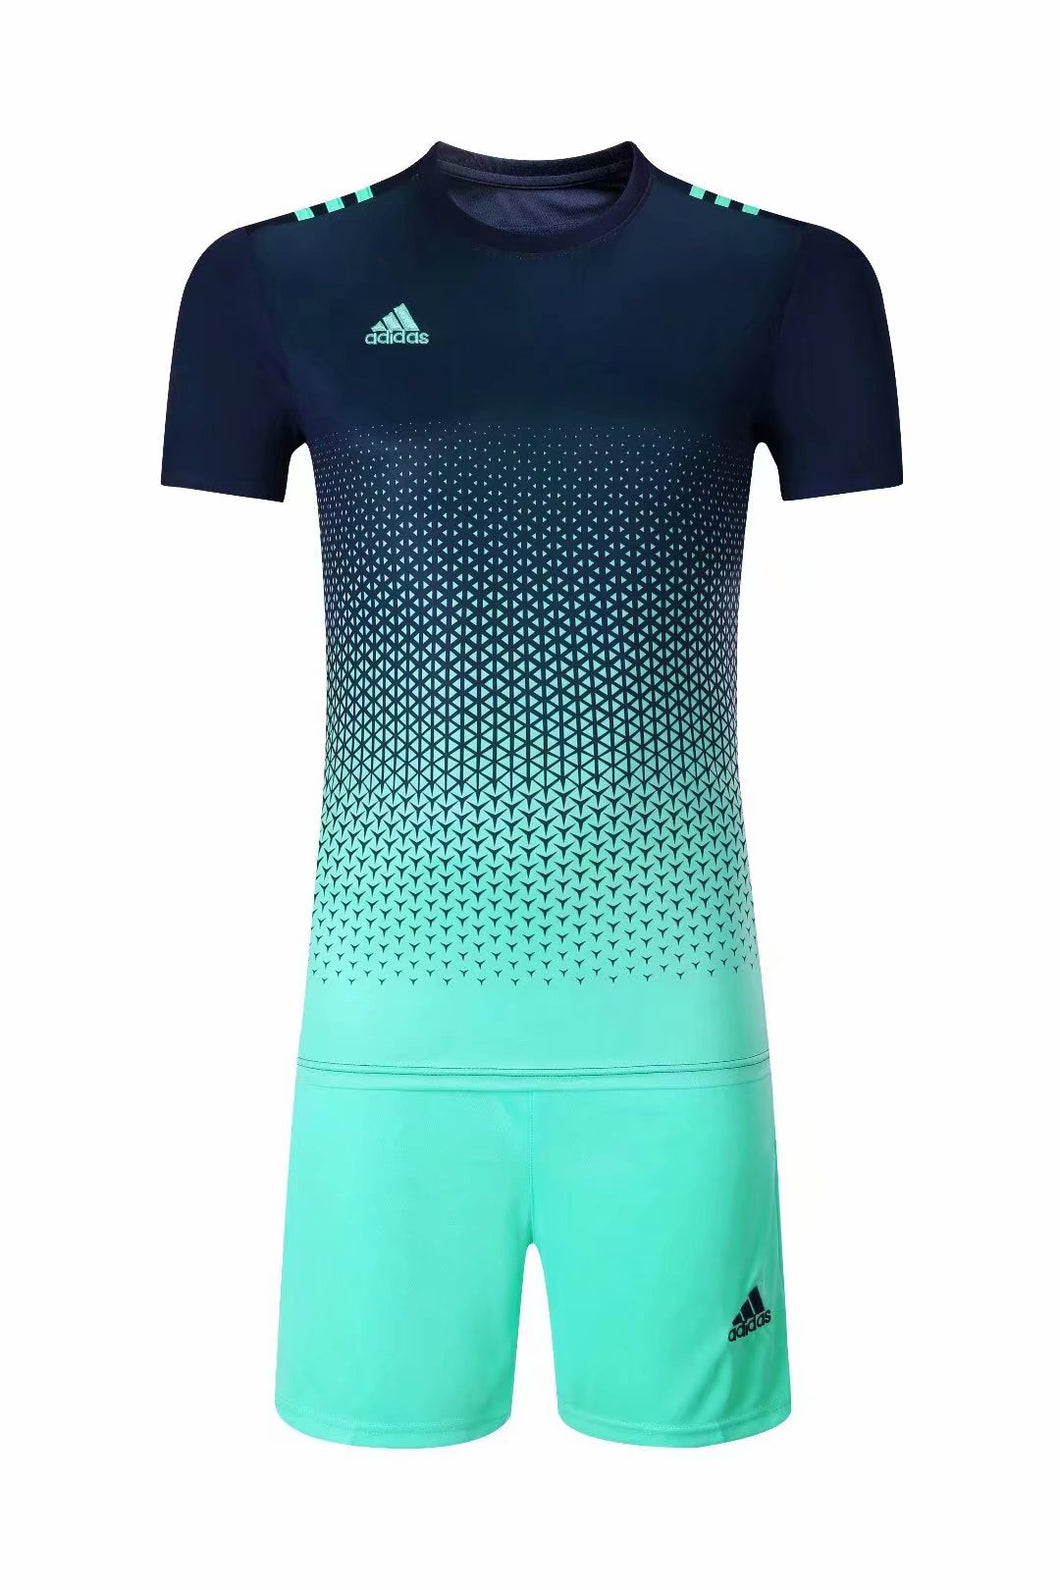 Adidas Full Football Kit Adult Sizes only - 2 tone Navy and light Blue.